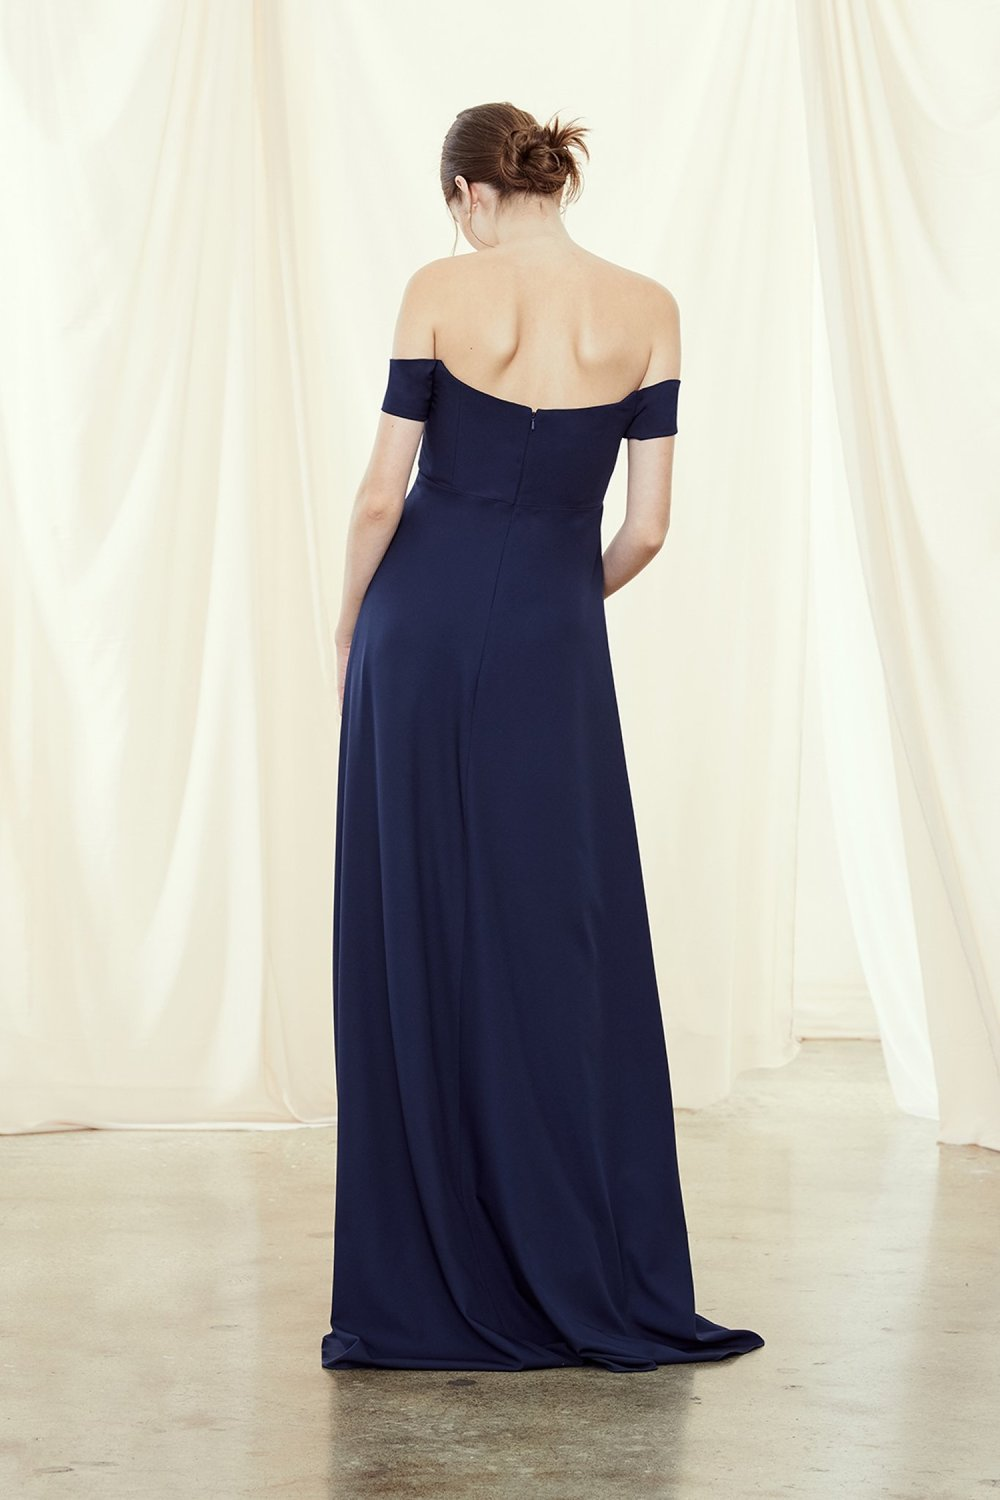 Autumn cold shoulder maternity style by Amsale Bridesmaids back view